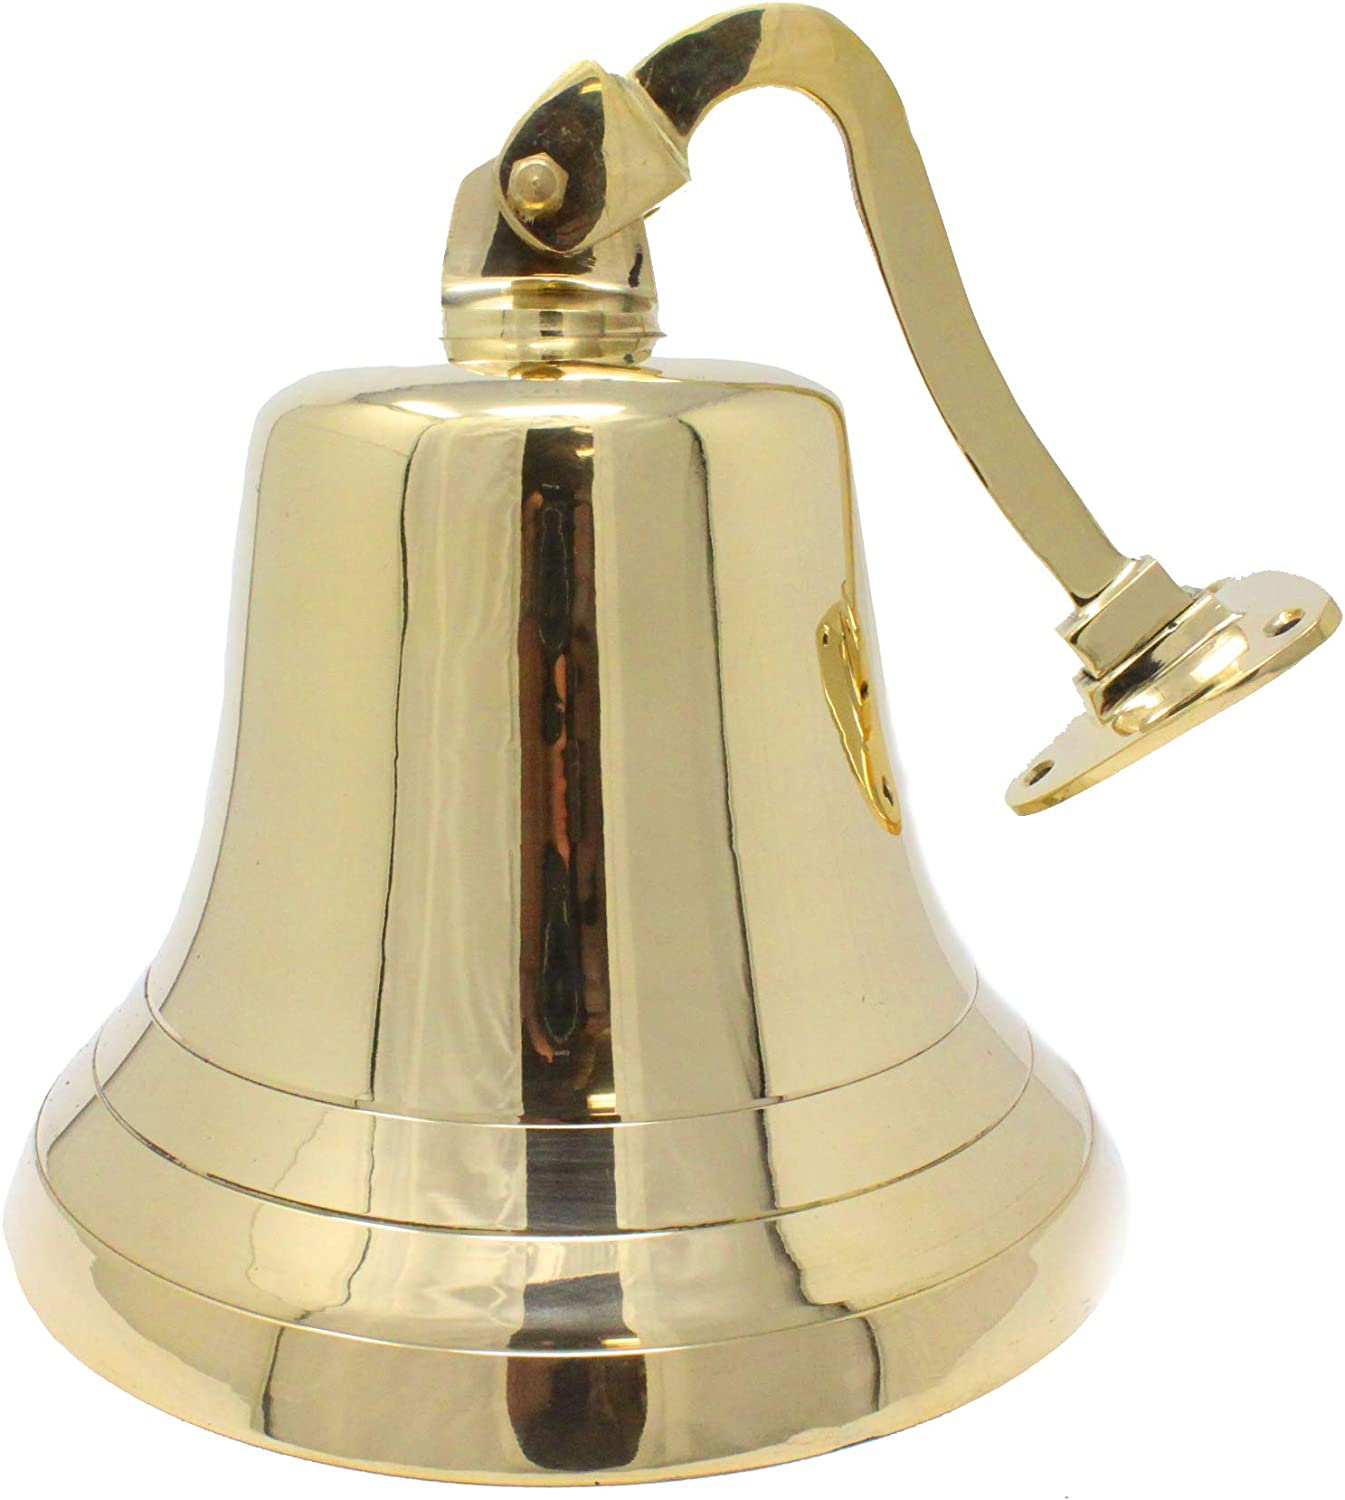 6 Small Ship Bell Wall Mount Office Large Bells Brass Navy Metal Nautical Decor Outdoor Hanging Victory Well Pack Box